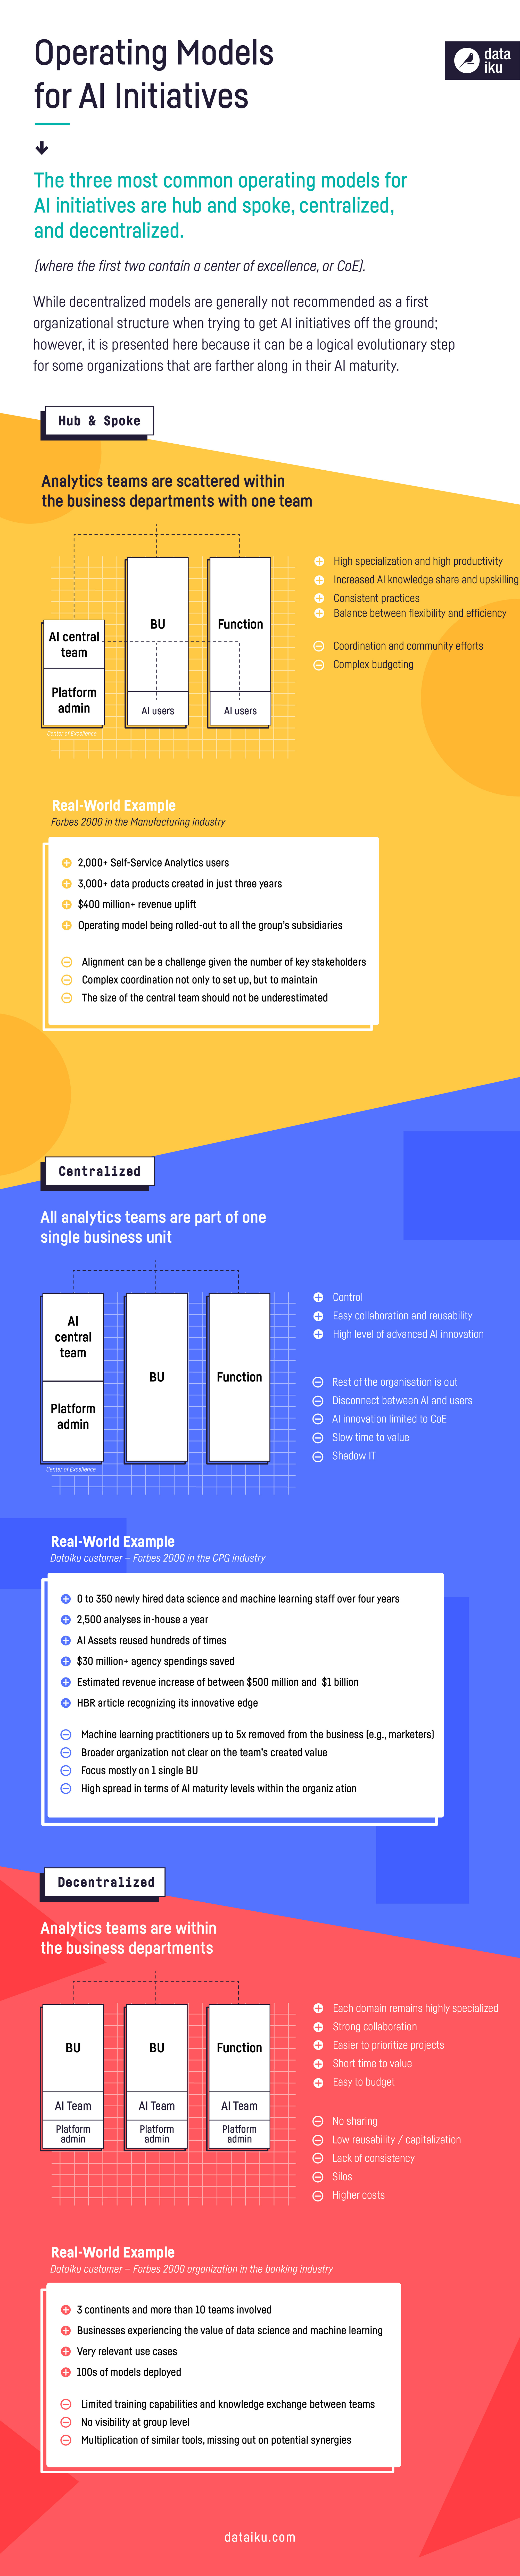 Infographic-Operating Models for AI Initiatives-02